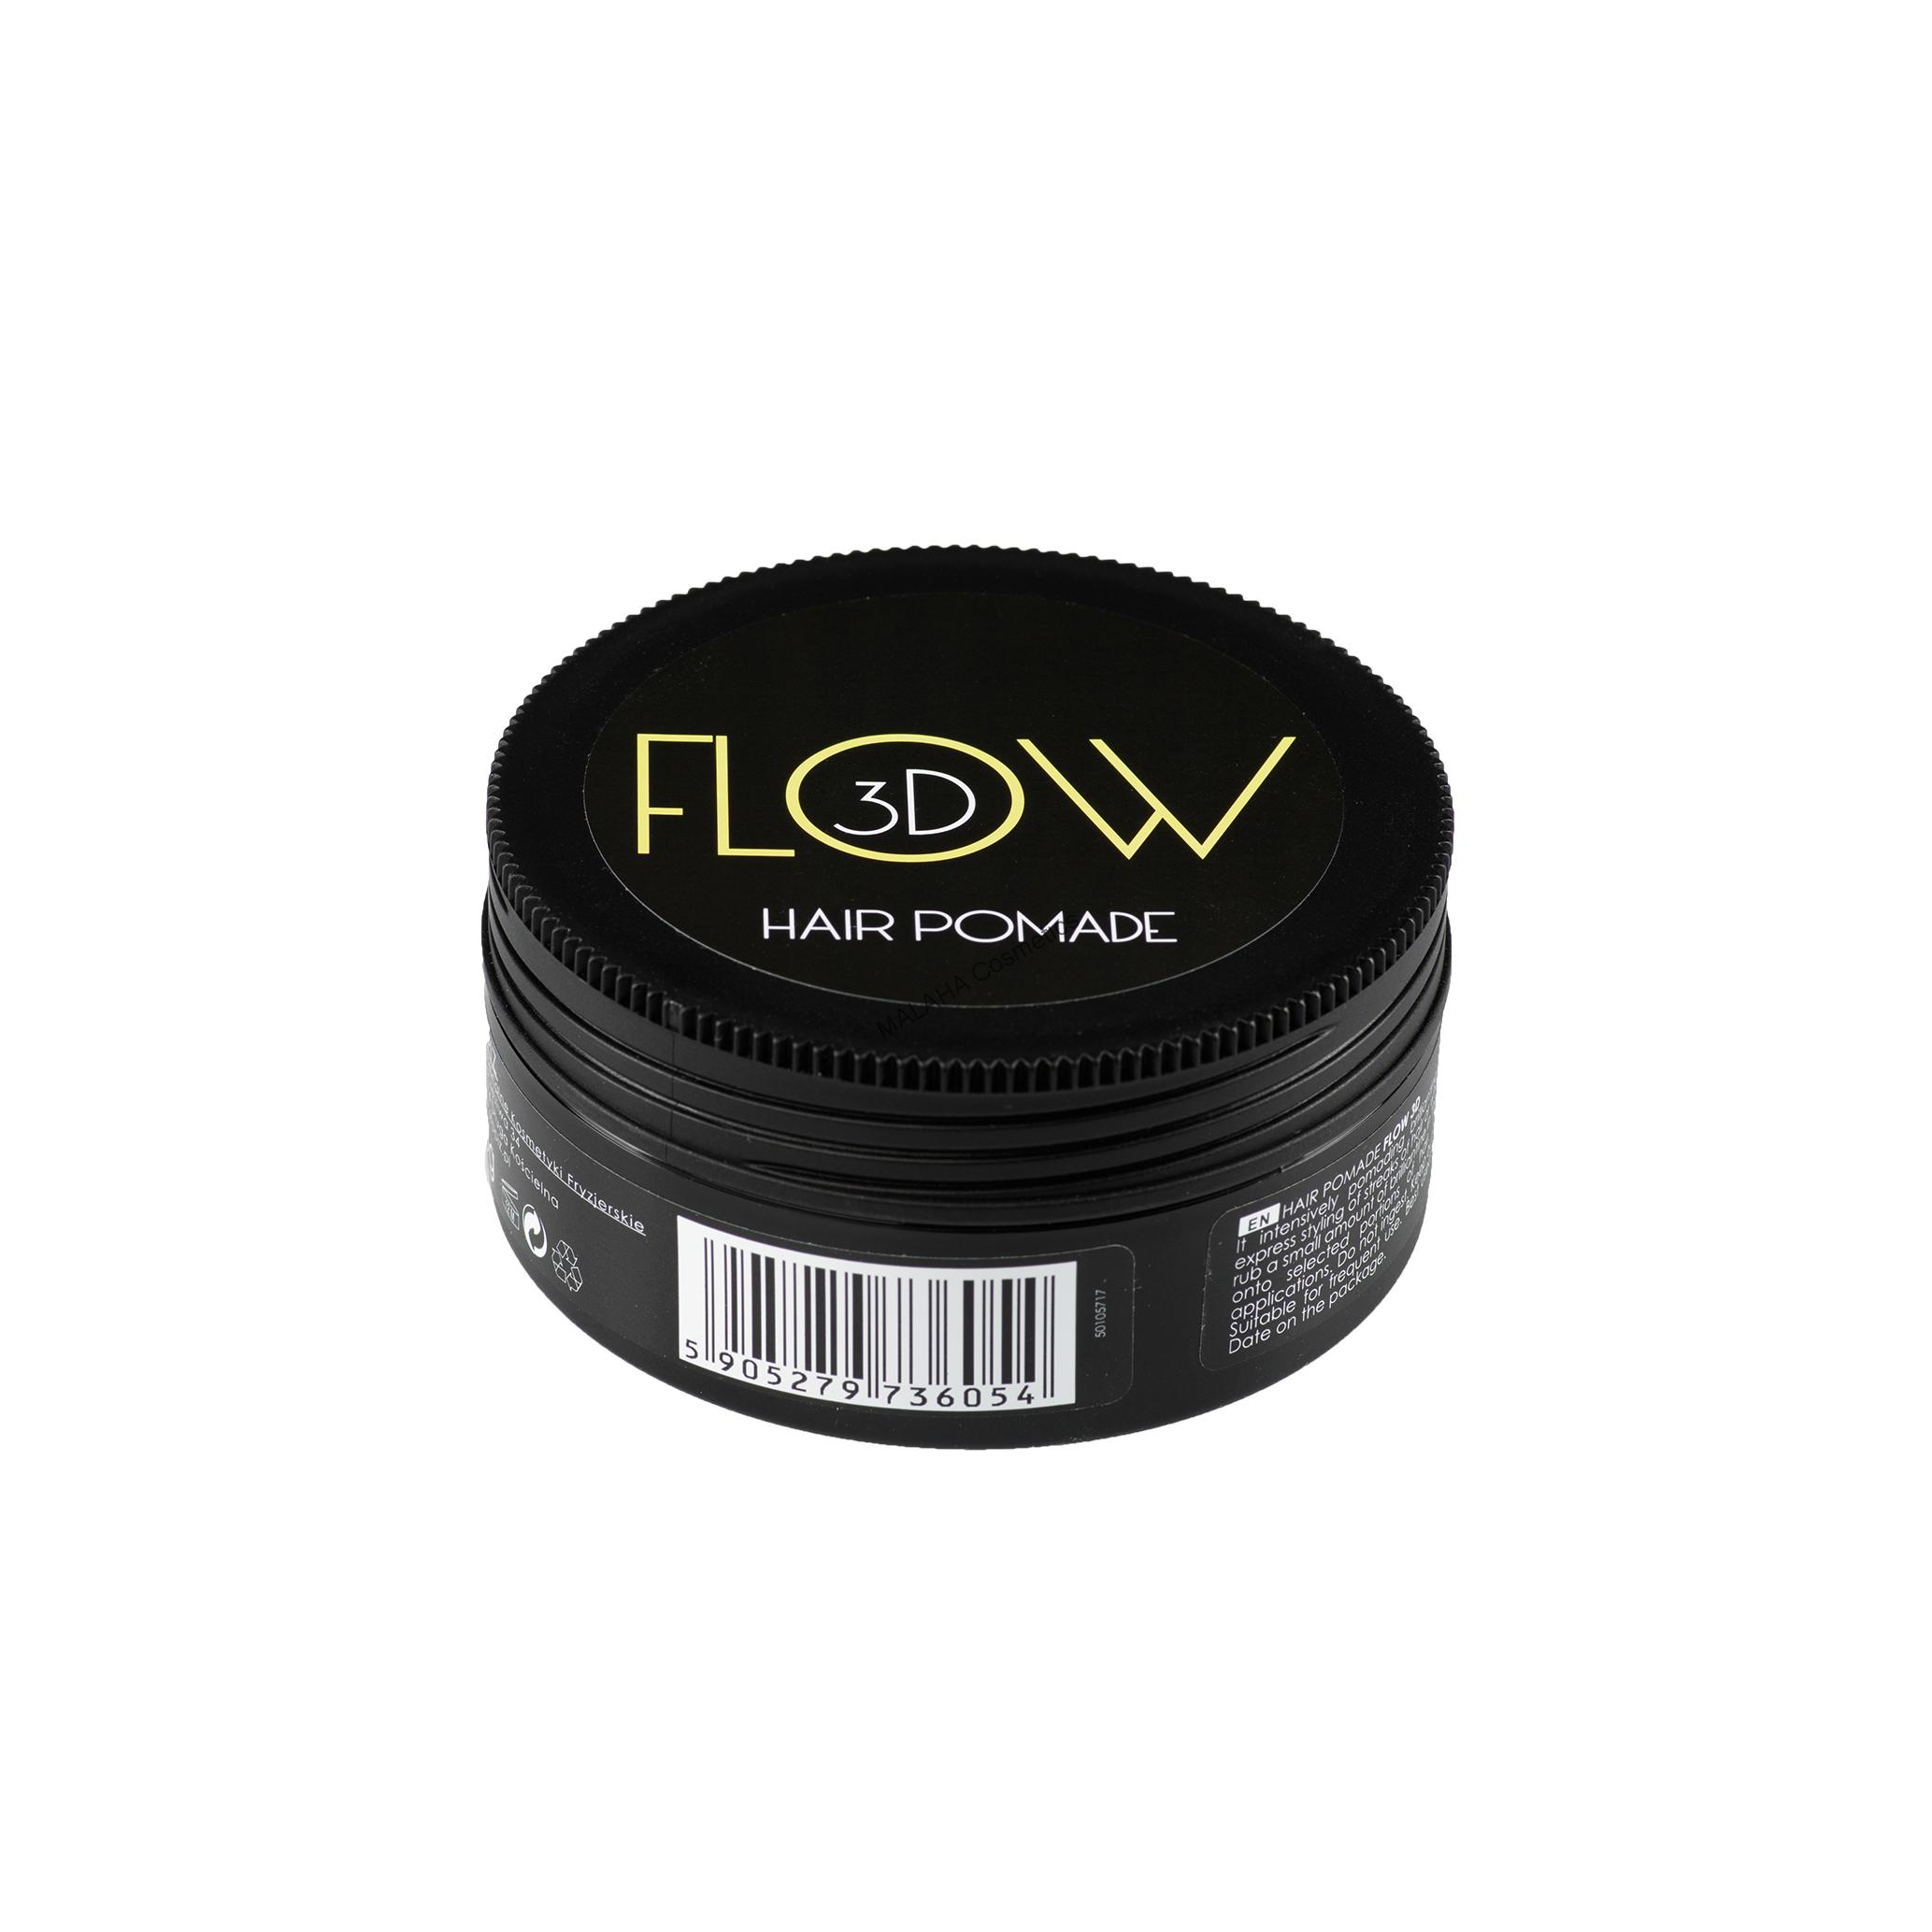 STAPIZ Hair Pomade FLOW 3D